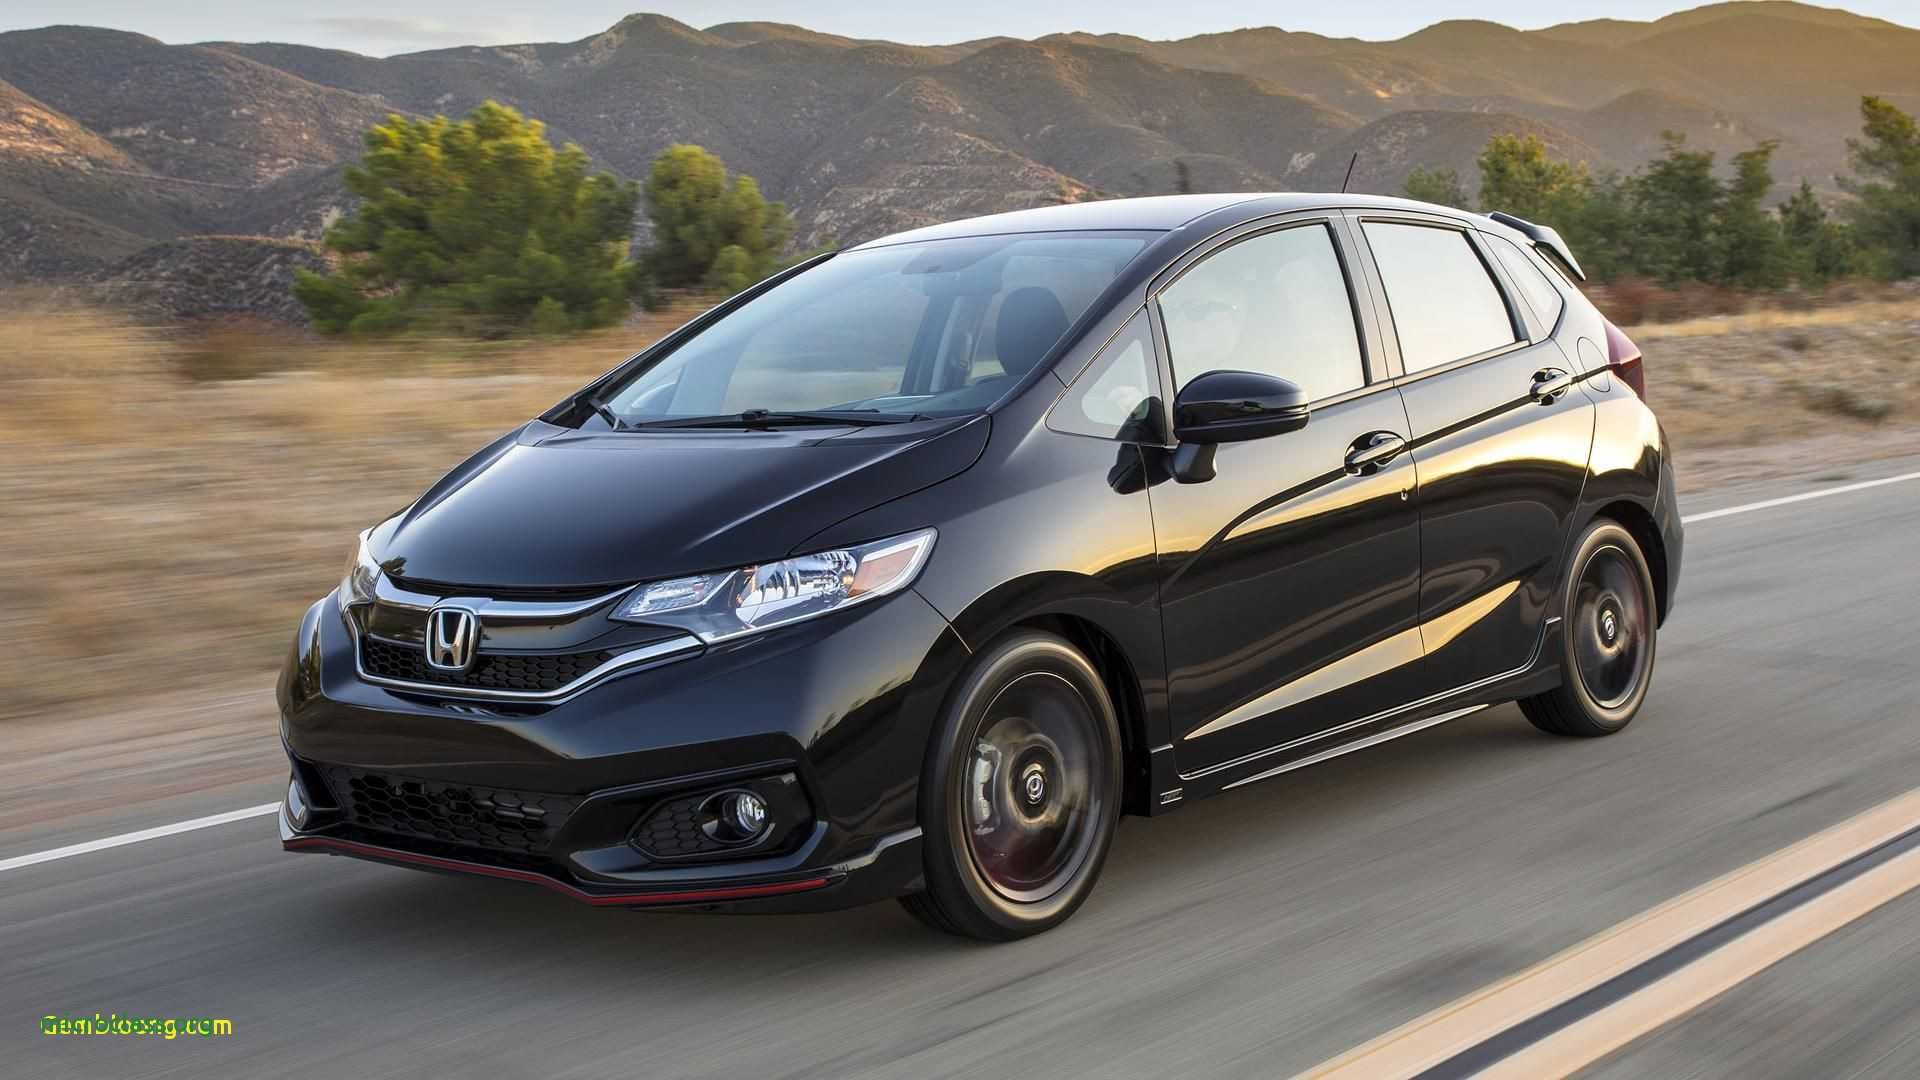 Honda Odyssey Modified Fresh Honda 2018 Reviews and Pictures Otospain Club Car Release Date-758 Of Awesome Honda Odyssey Modified